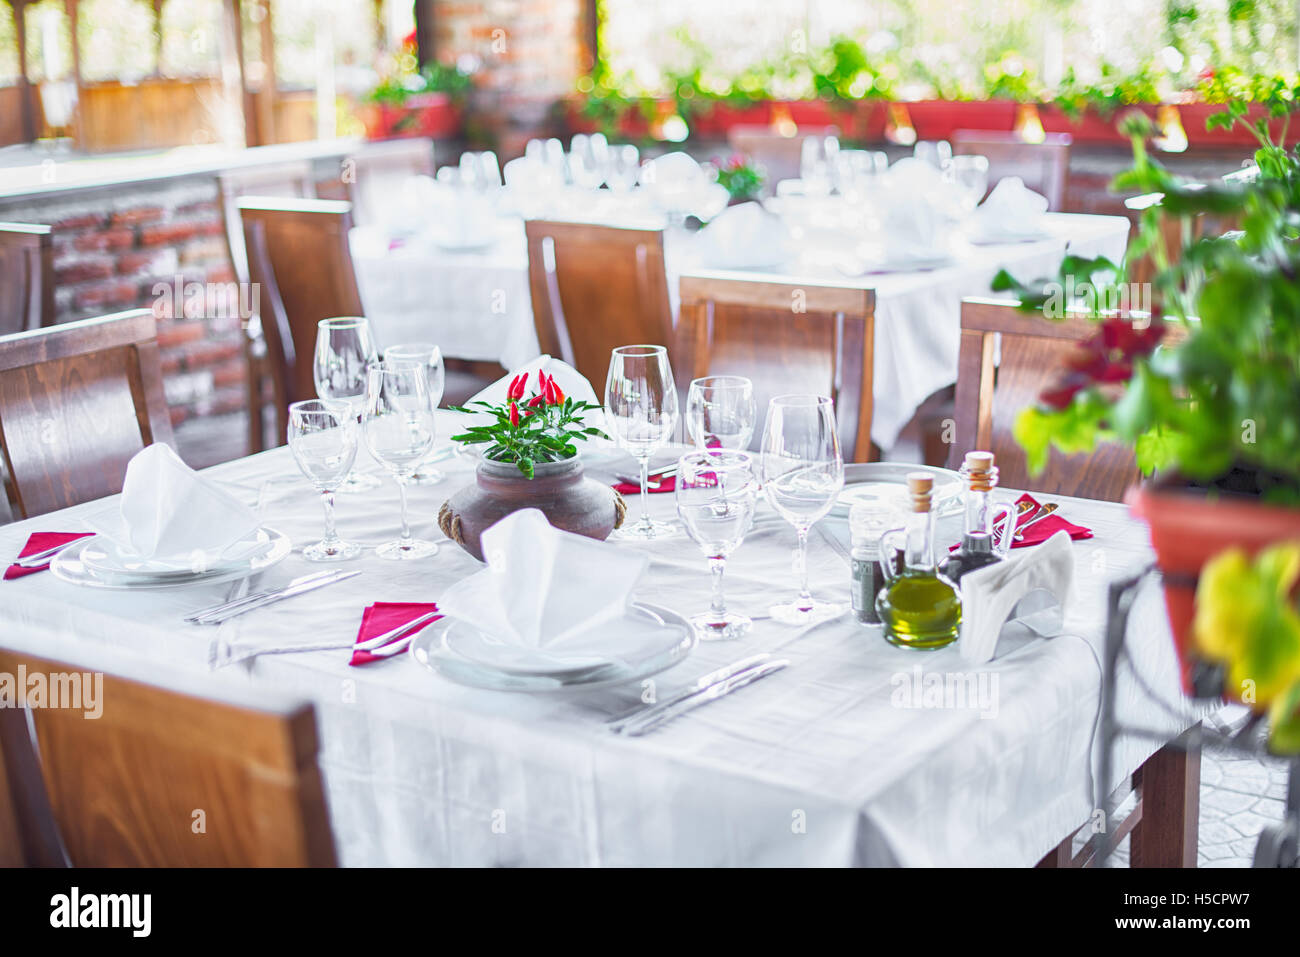 Glasses and plates on table in restaurant Stock Photo